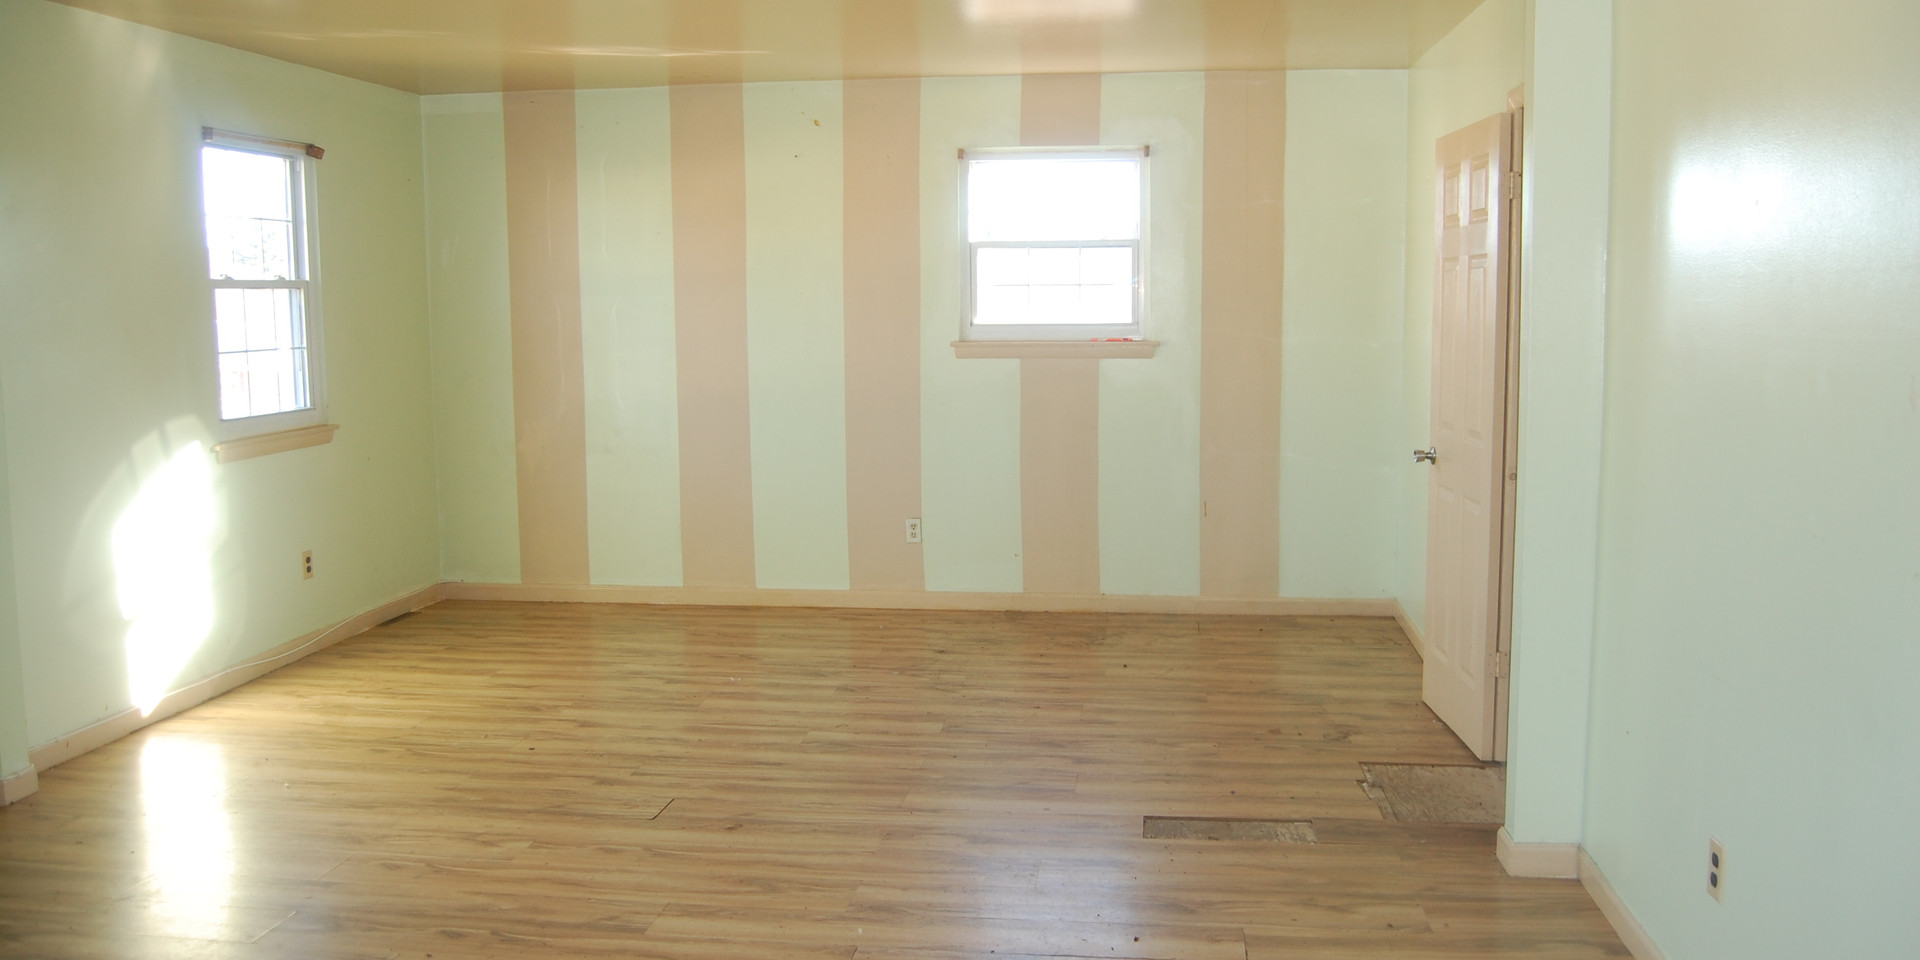 8.1 Converted Master Bedroom.jpg